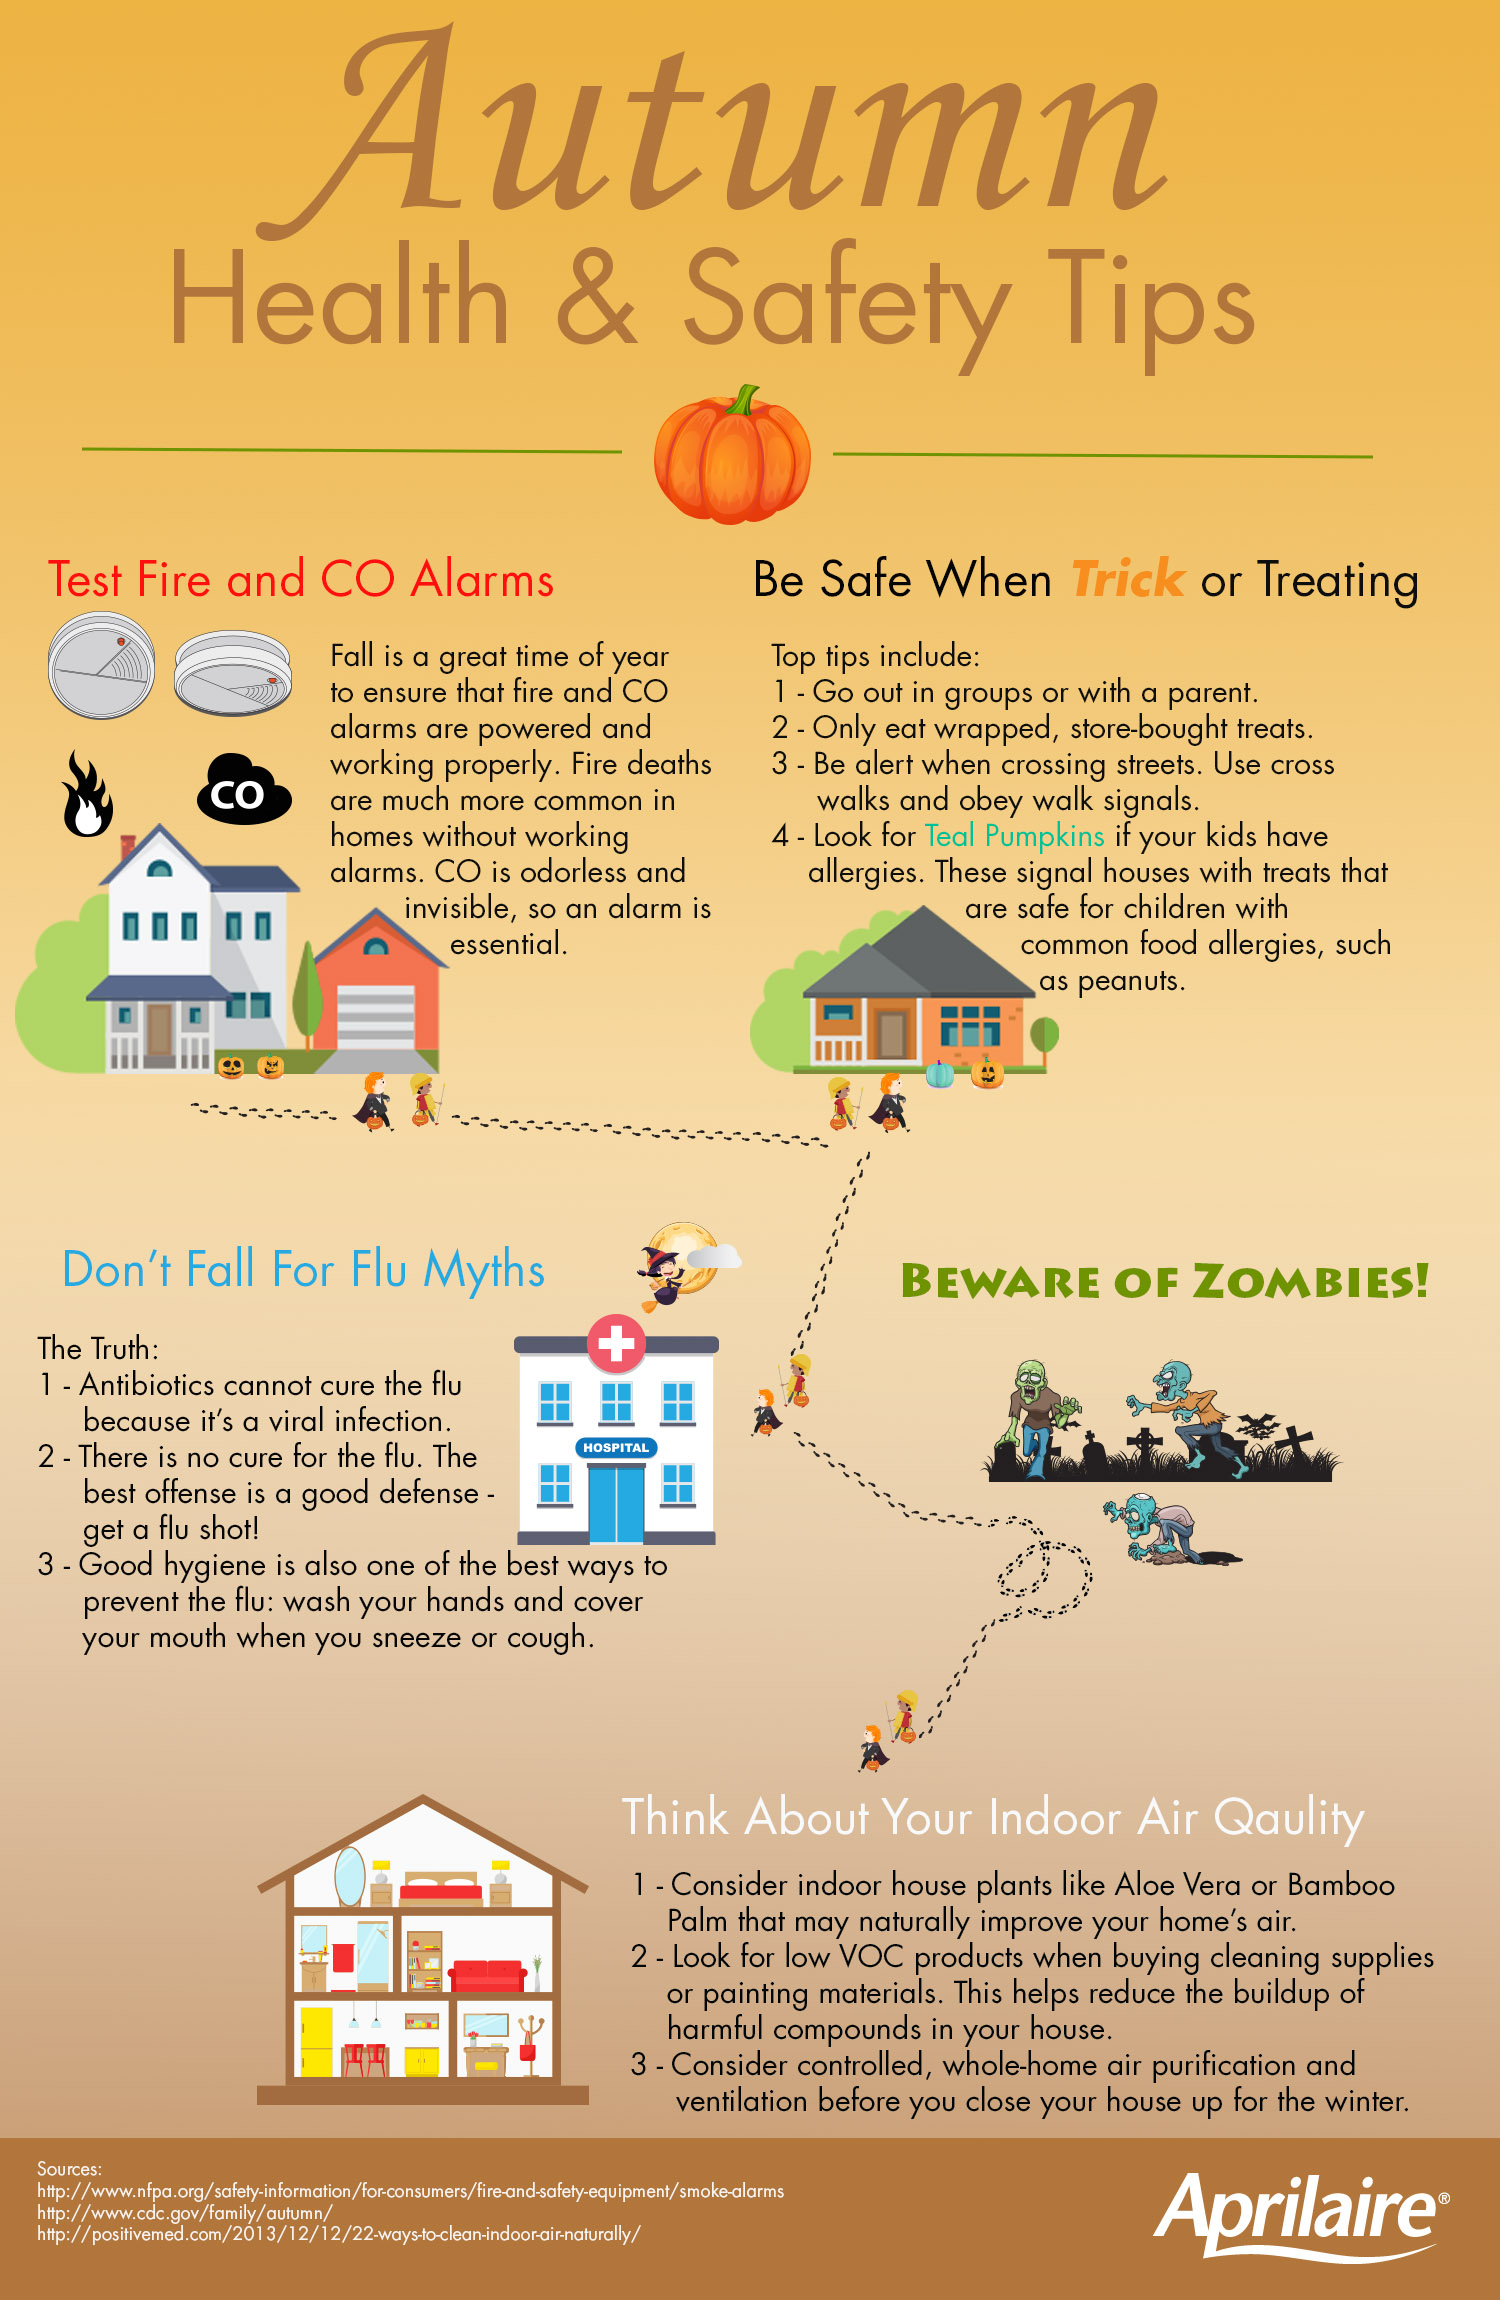 Autumn Health and Safety Tips Aprilaire #B98112